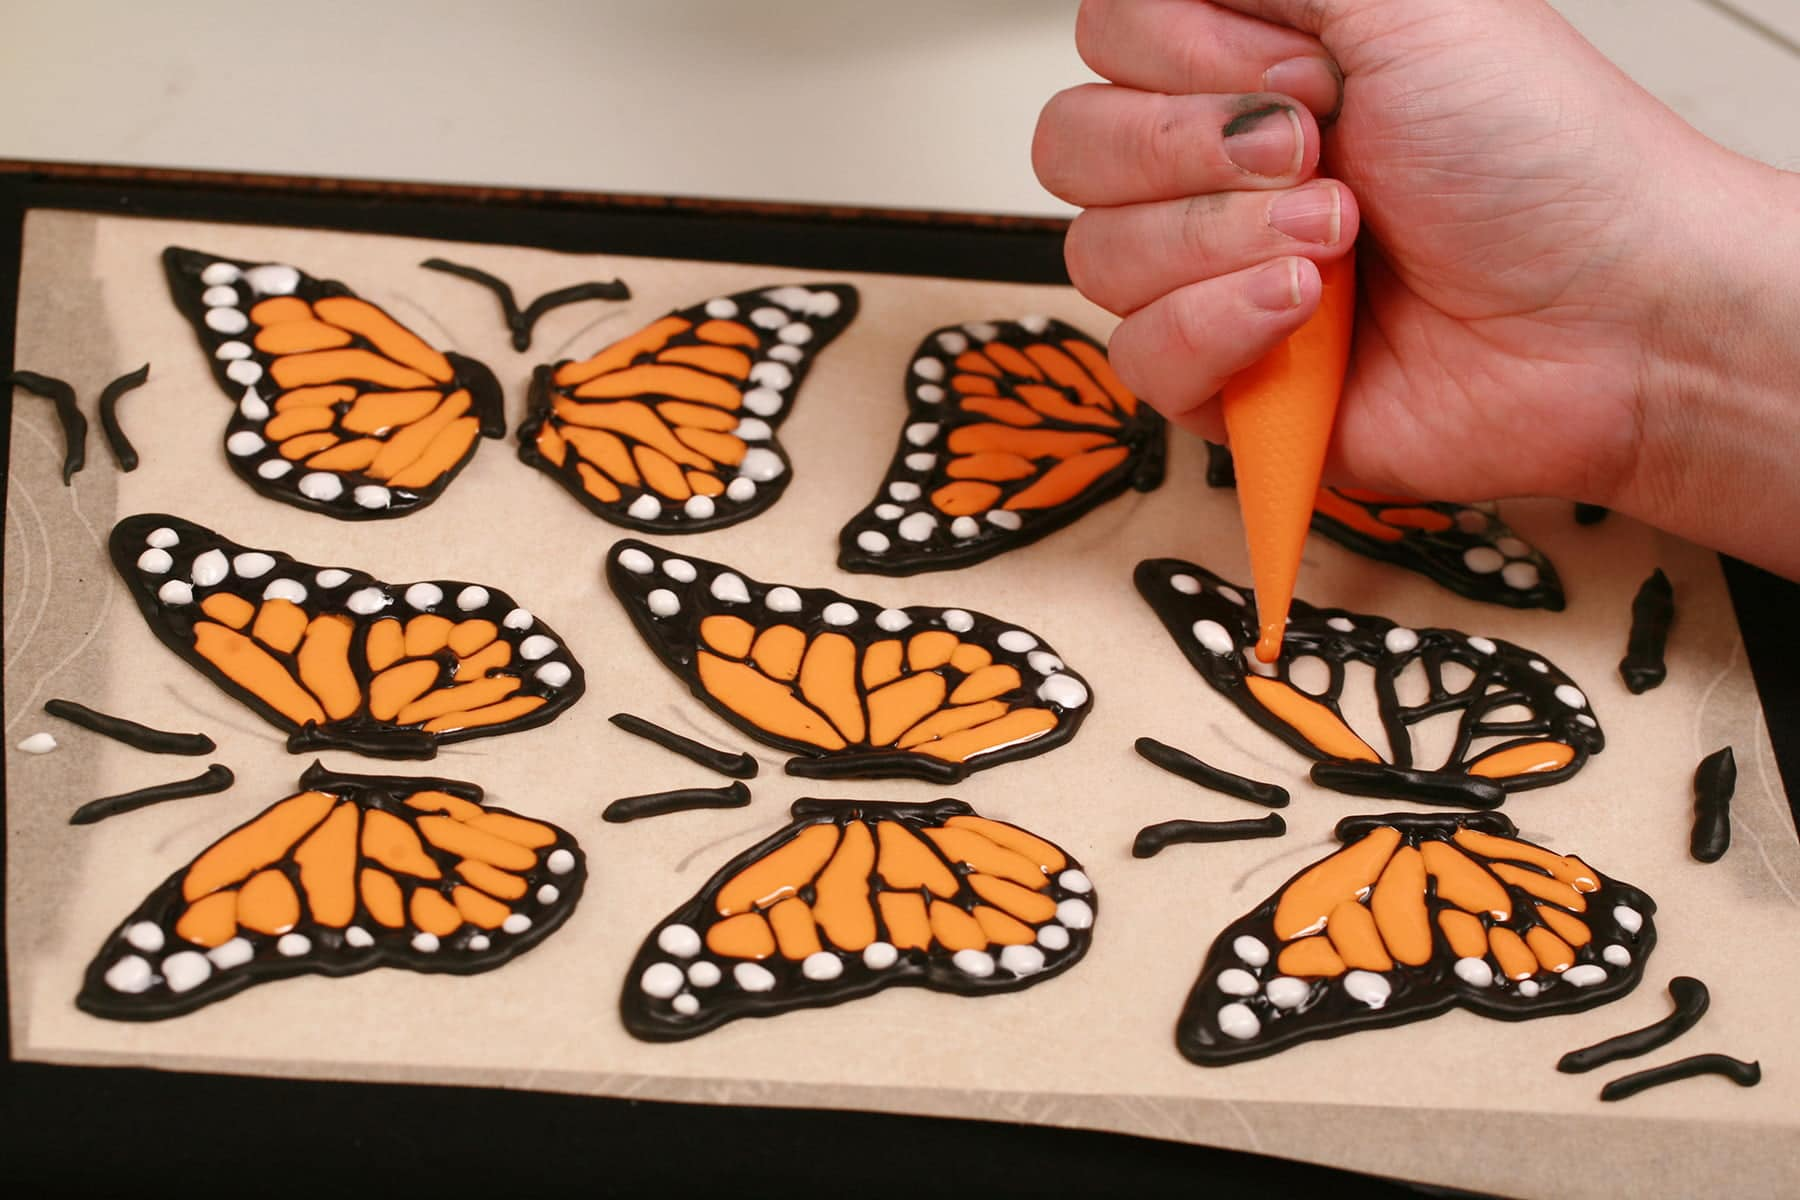 A hand uses a pastry bag full of orange royal icing to fill in the outlines of a monarch butterfly wing.